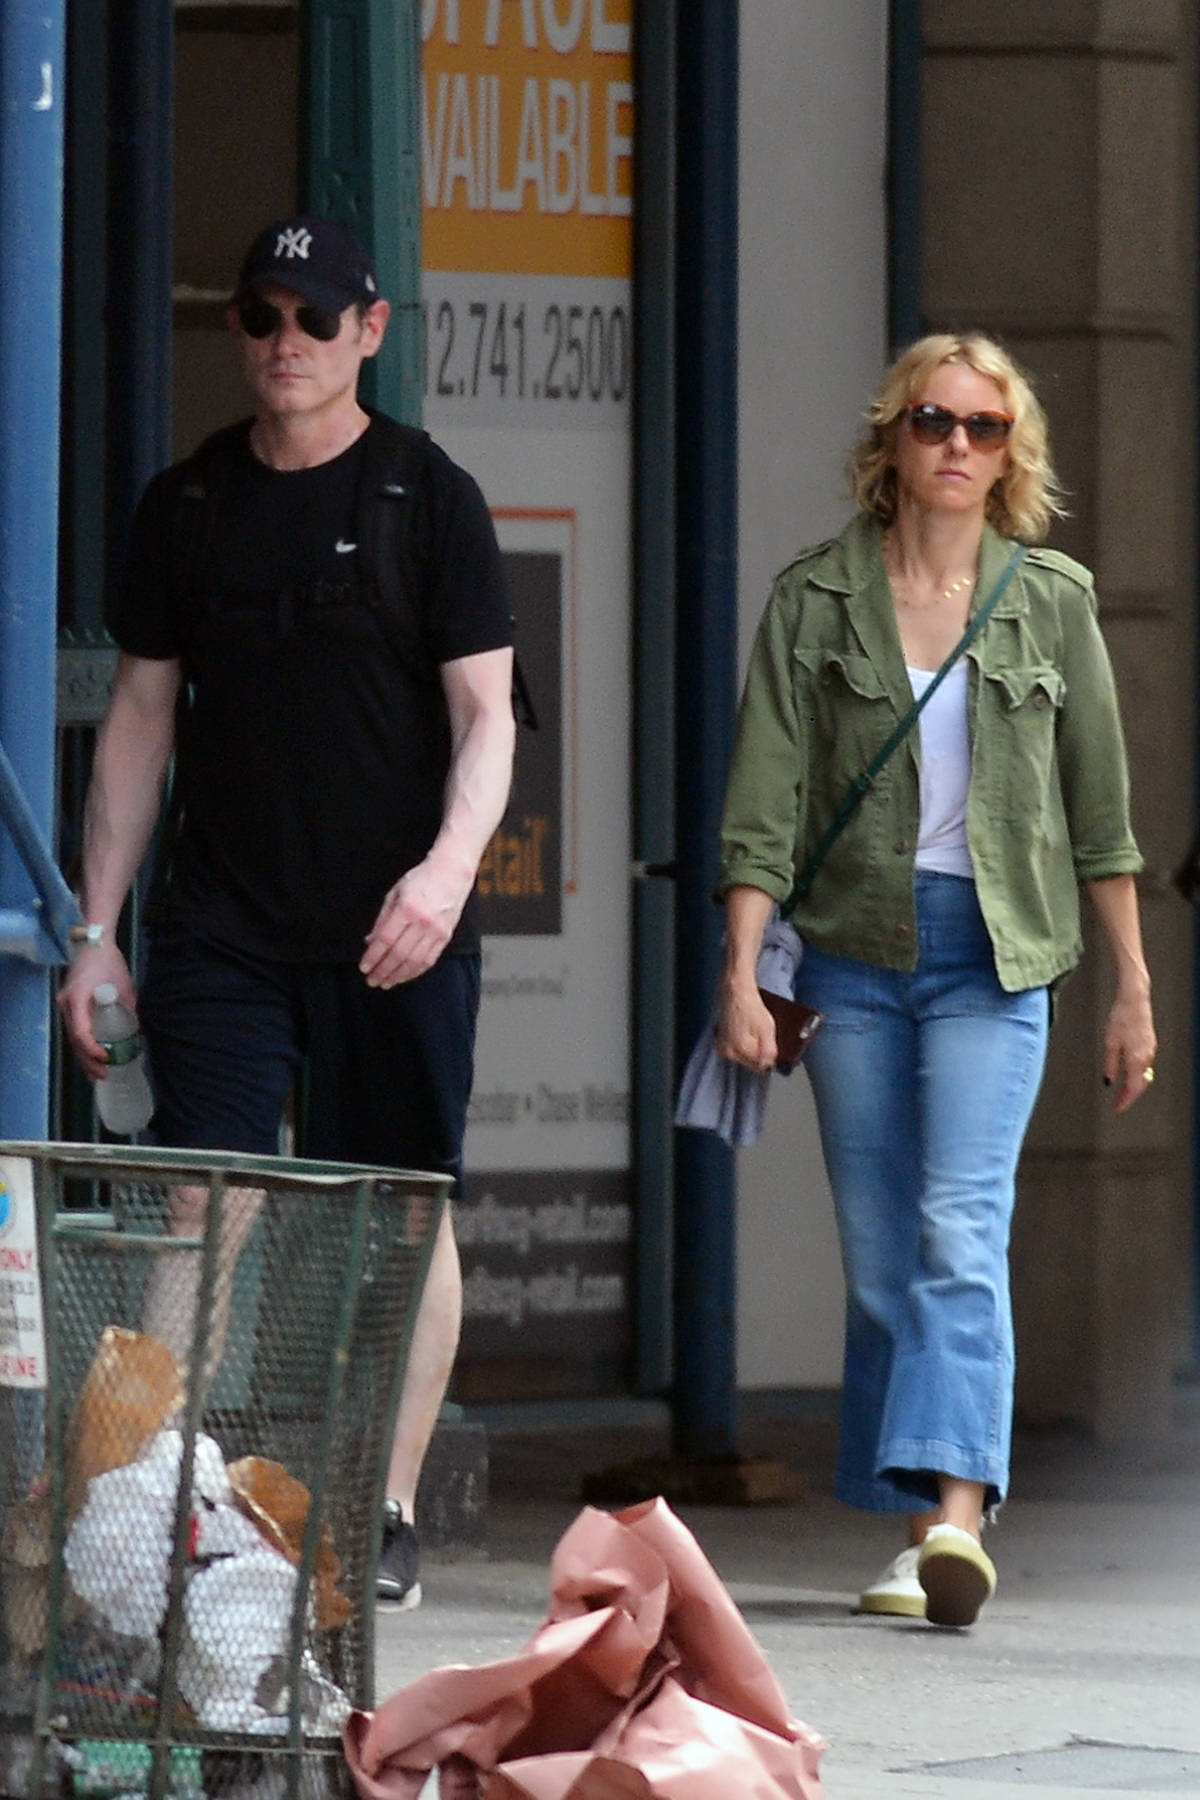 Naomi Watts and Billy Crudup are spotted stepping out together in New York